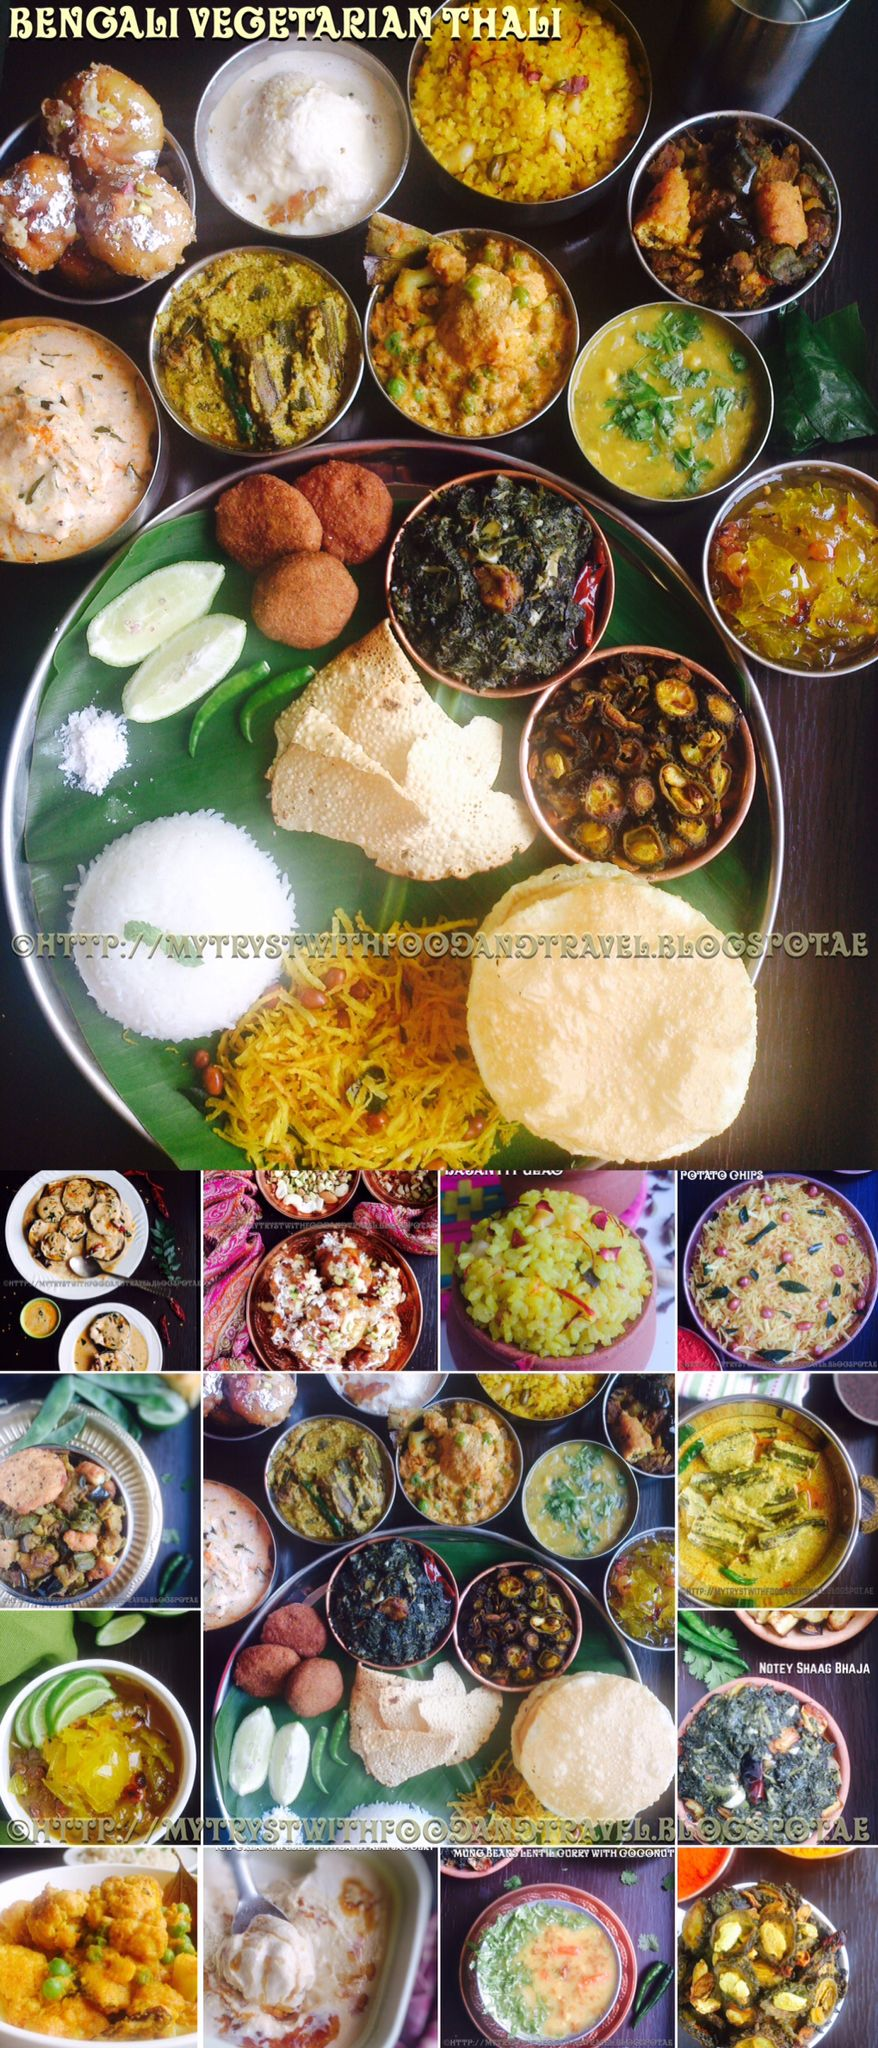 Bengali vegetarian thali recipes pinterest food recipes and bengali vegetarian thali a splash of unassuming nuances and striking flavours forumfinder Image collections